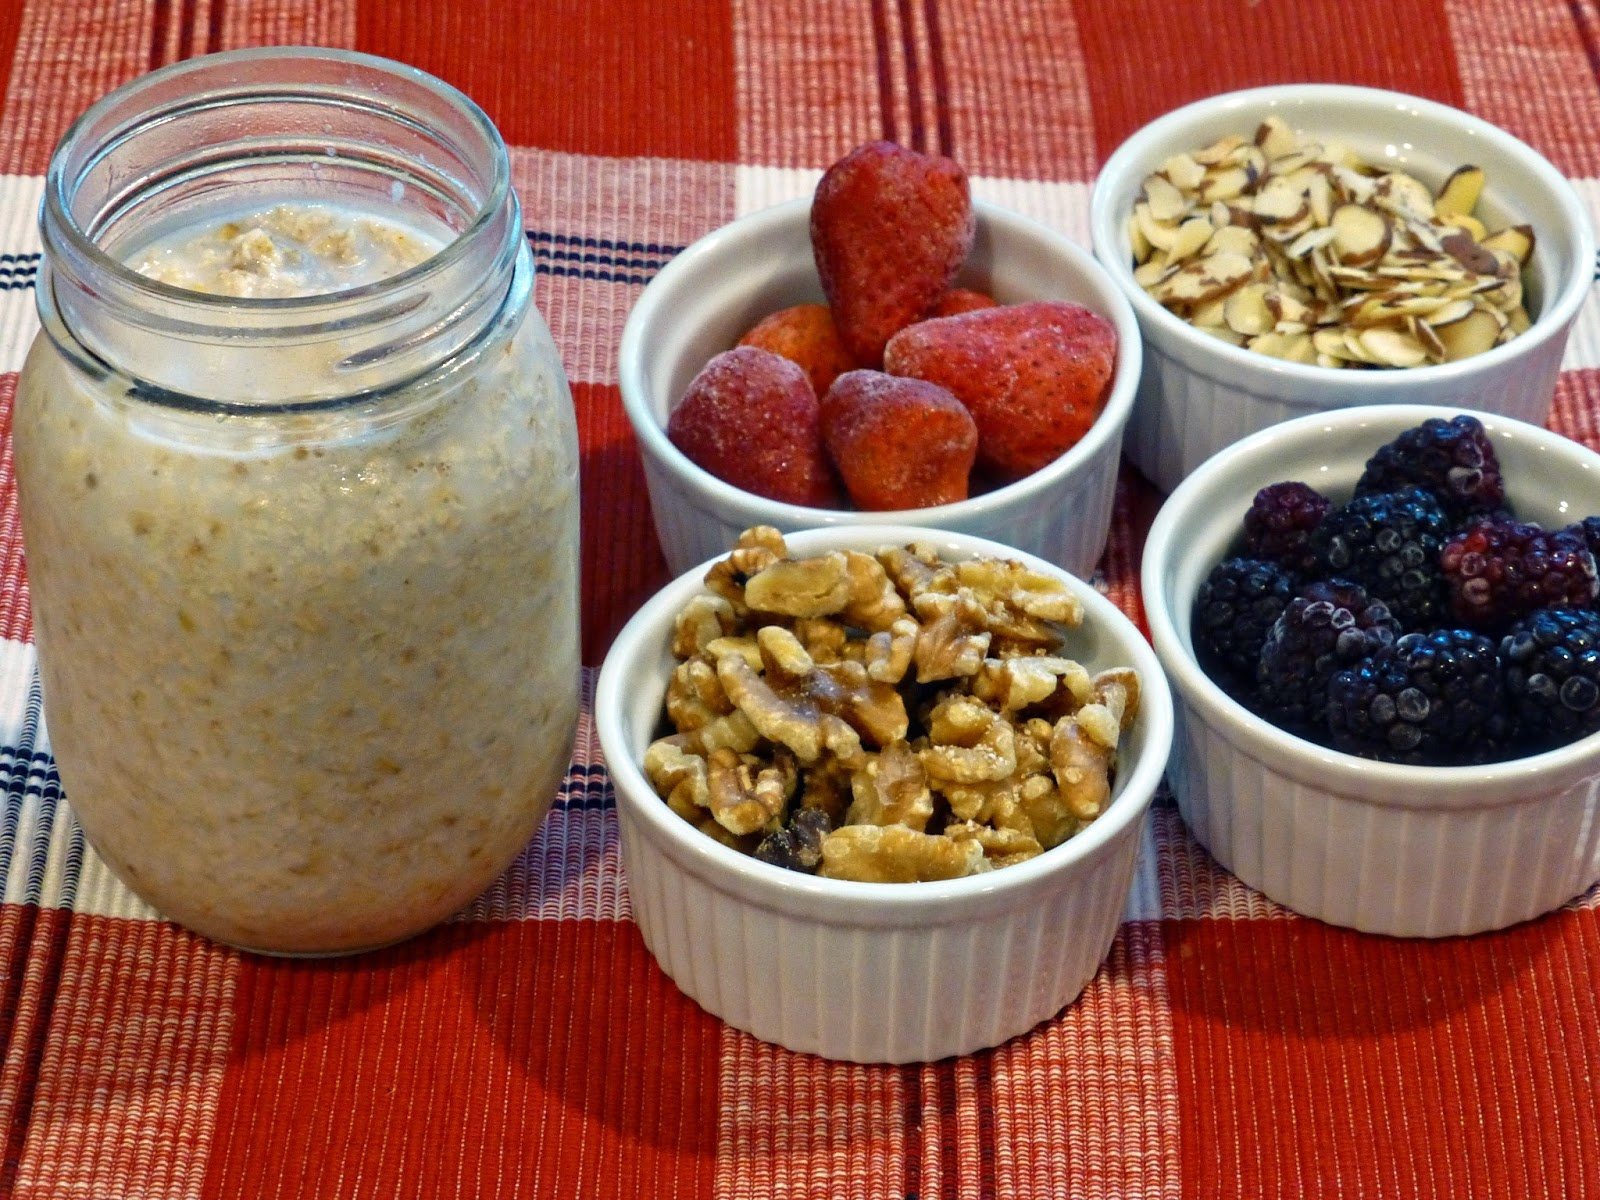 ... Nuts: Mason Jar Salads and More + Strawberry Walnut Breakfast Smoothie